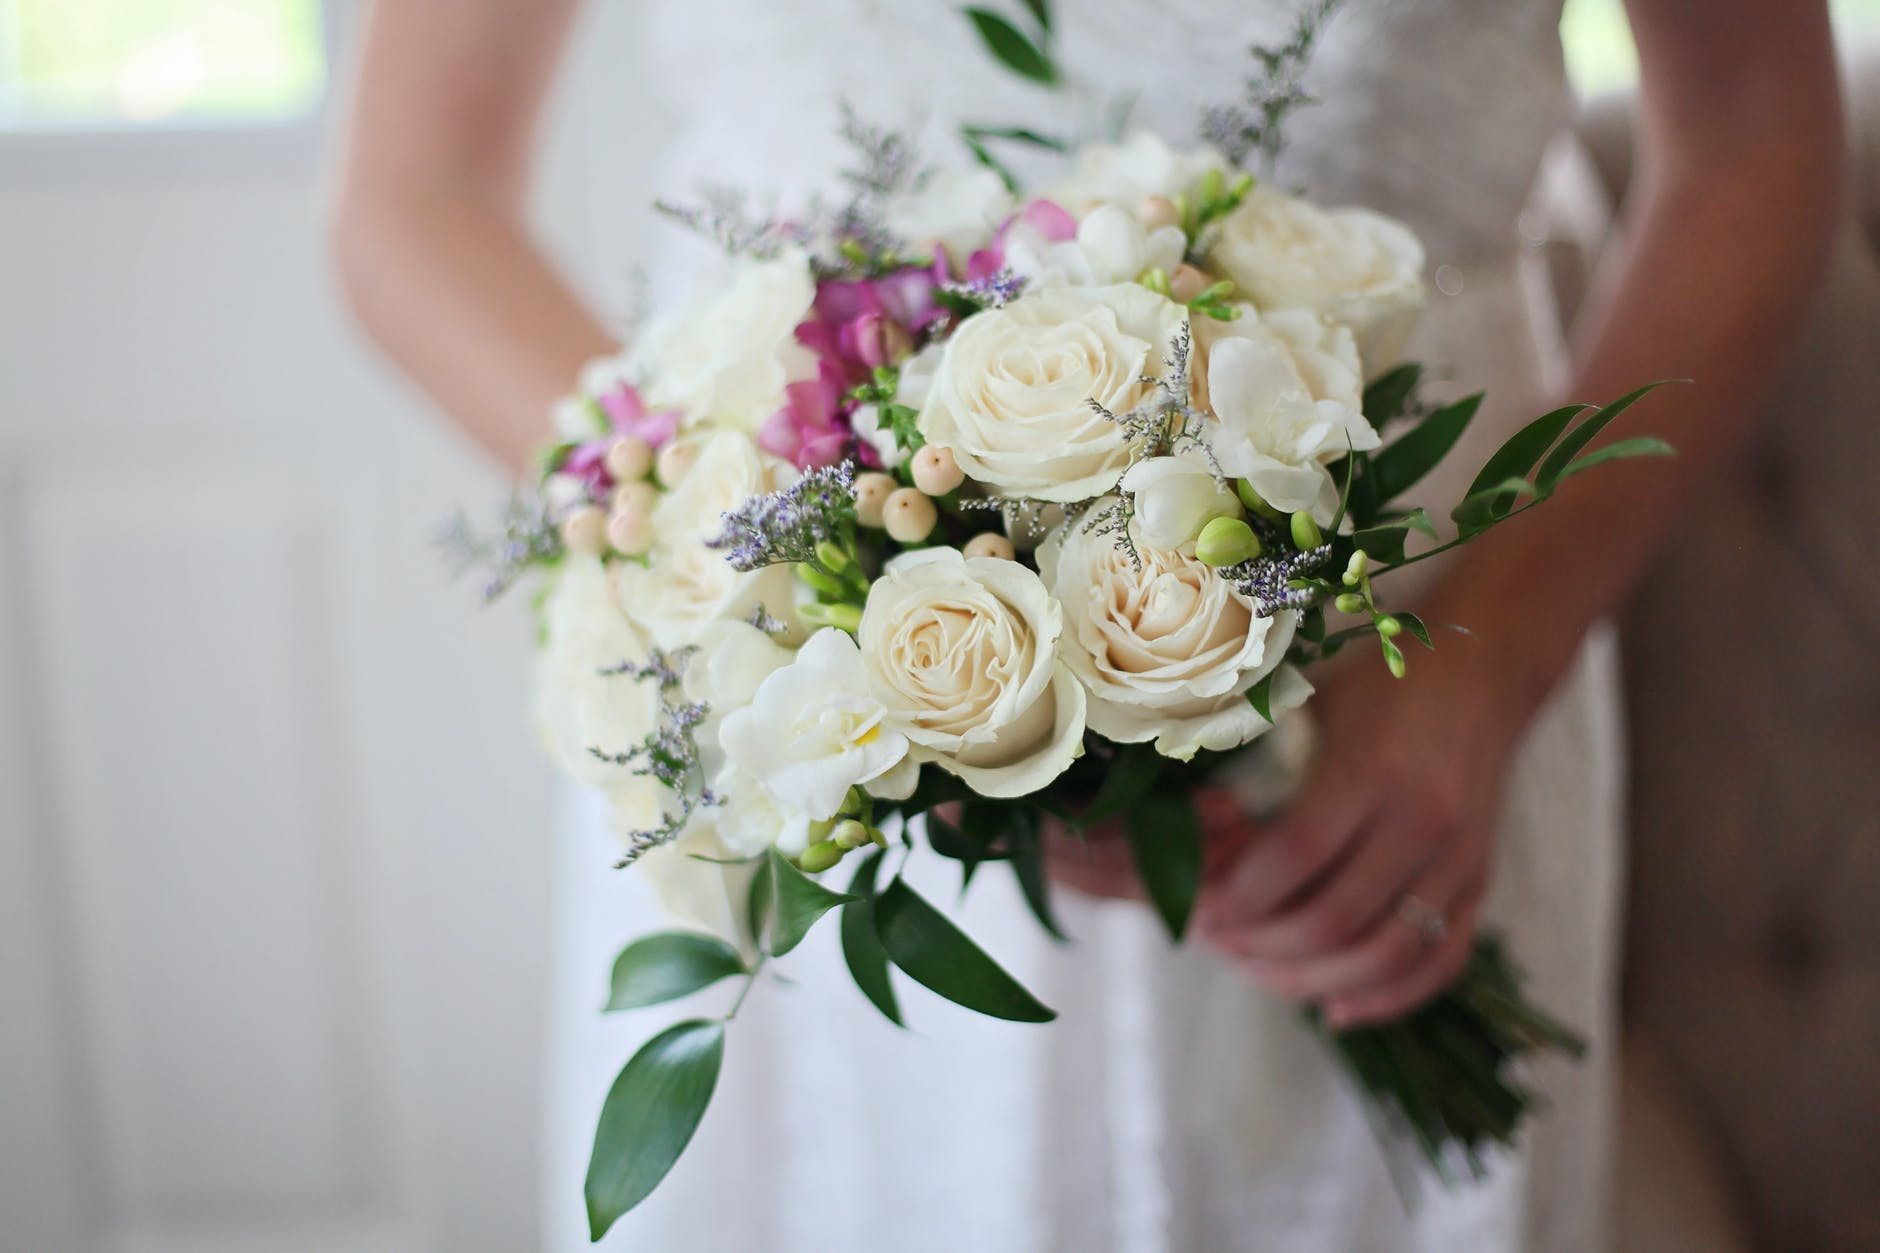 brides holding white bouquet of roses